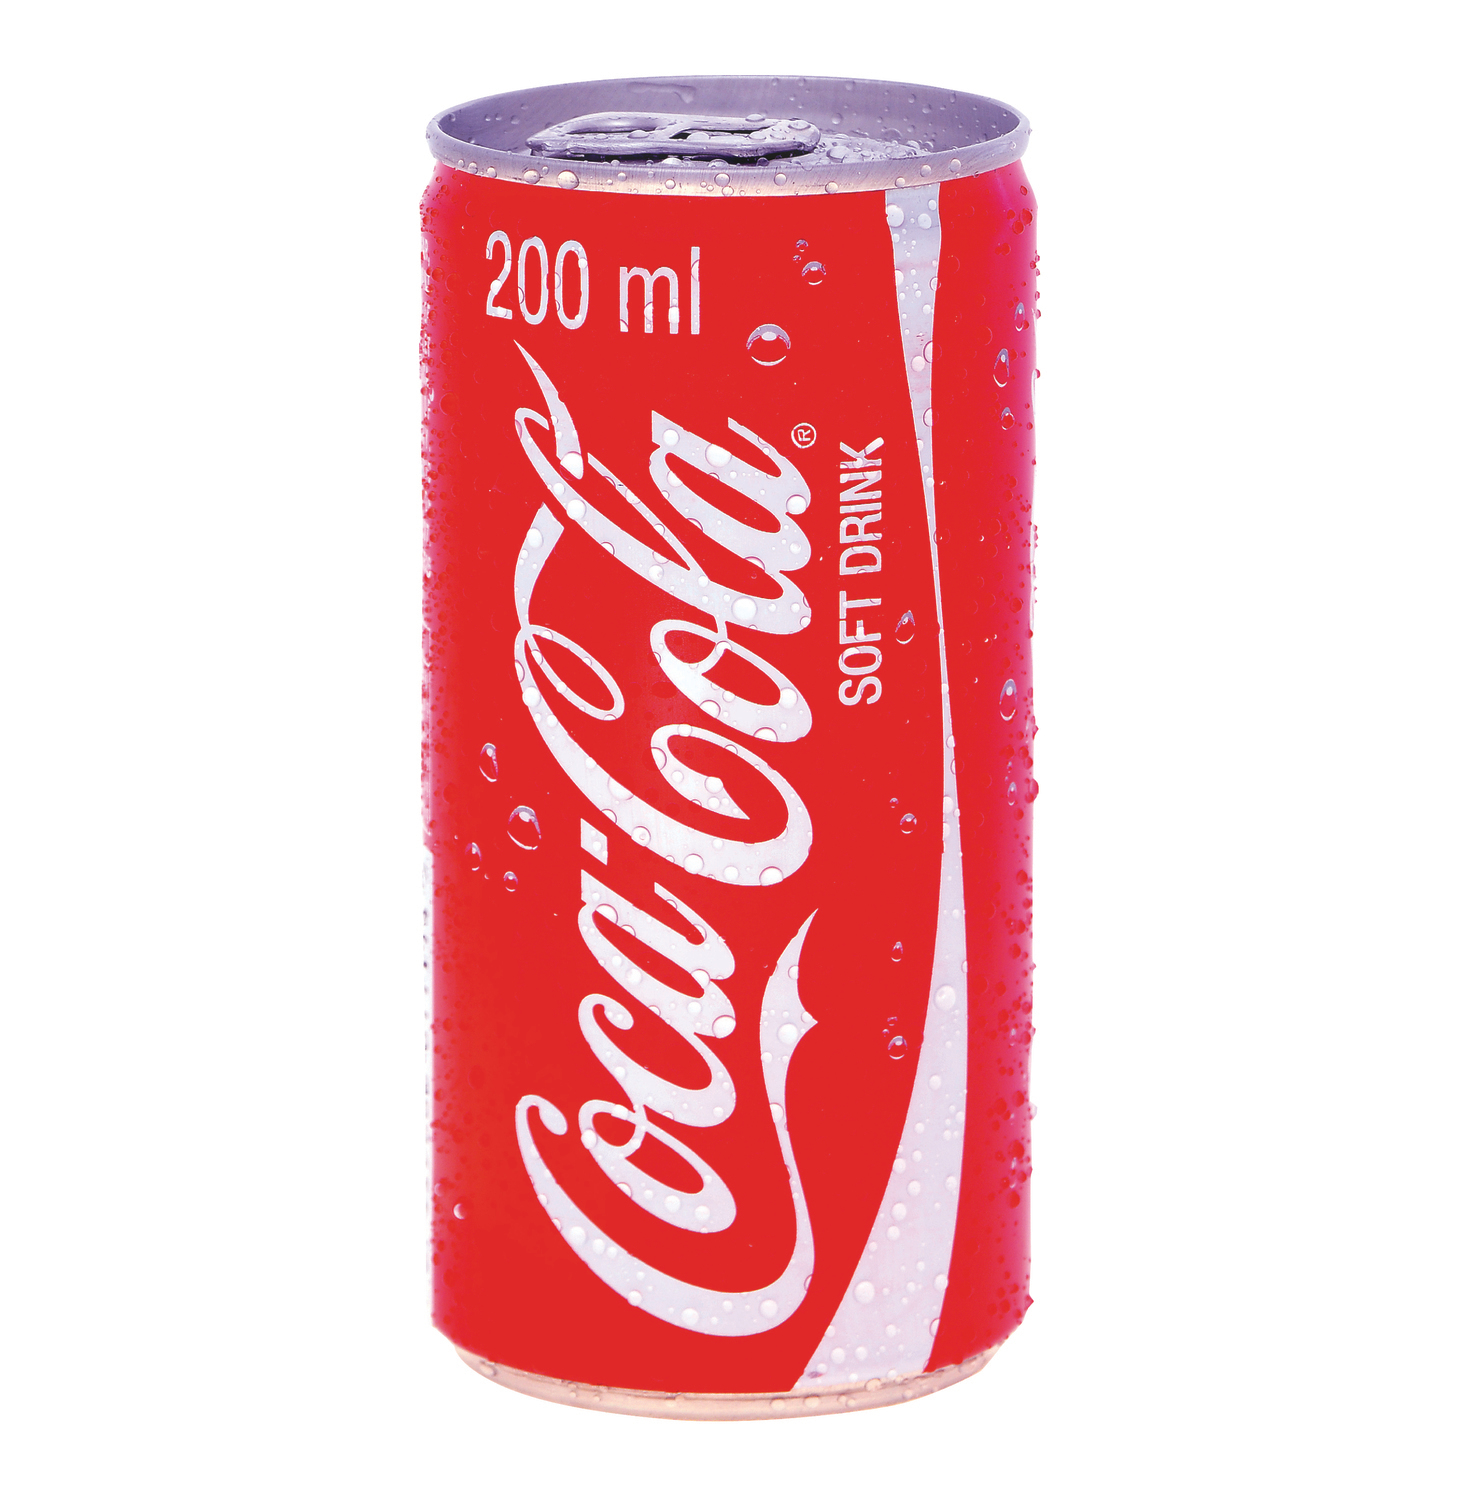 Coca-cola Soft Drink Can (6 x 200ml)